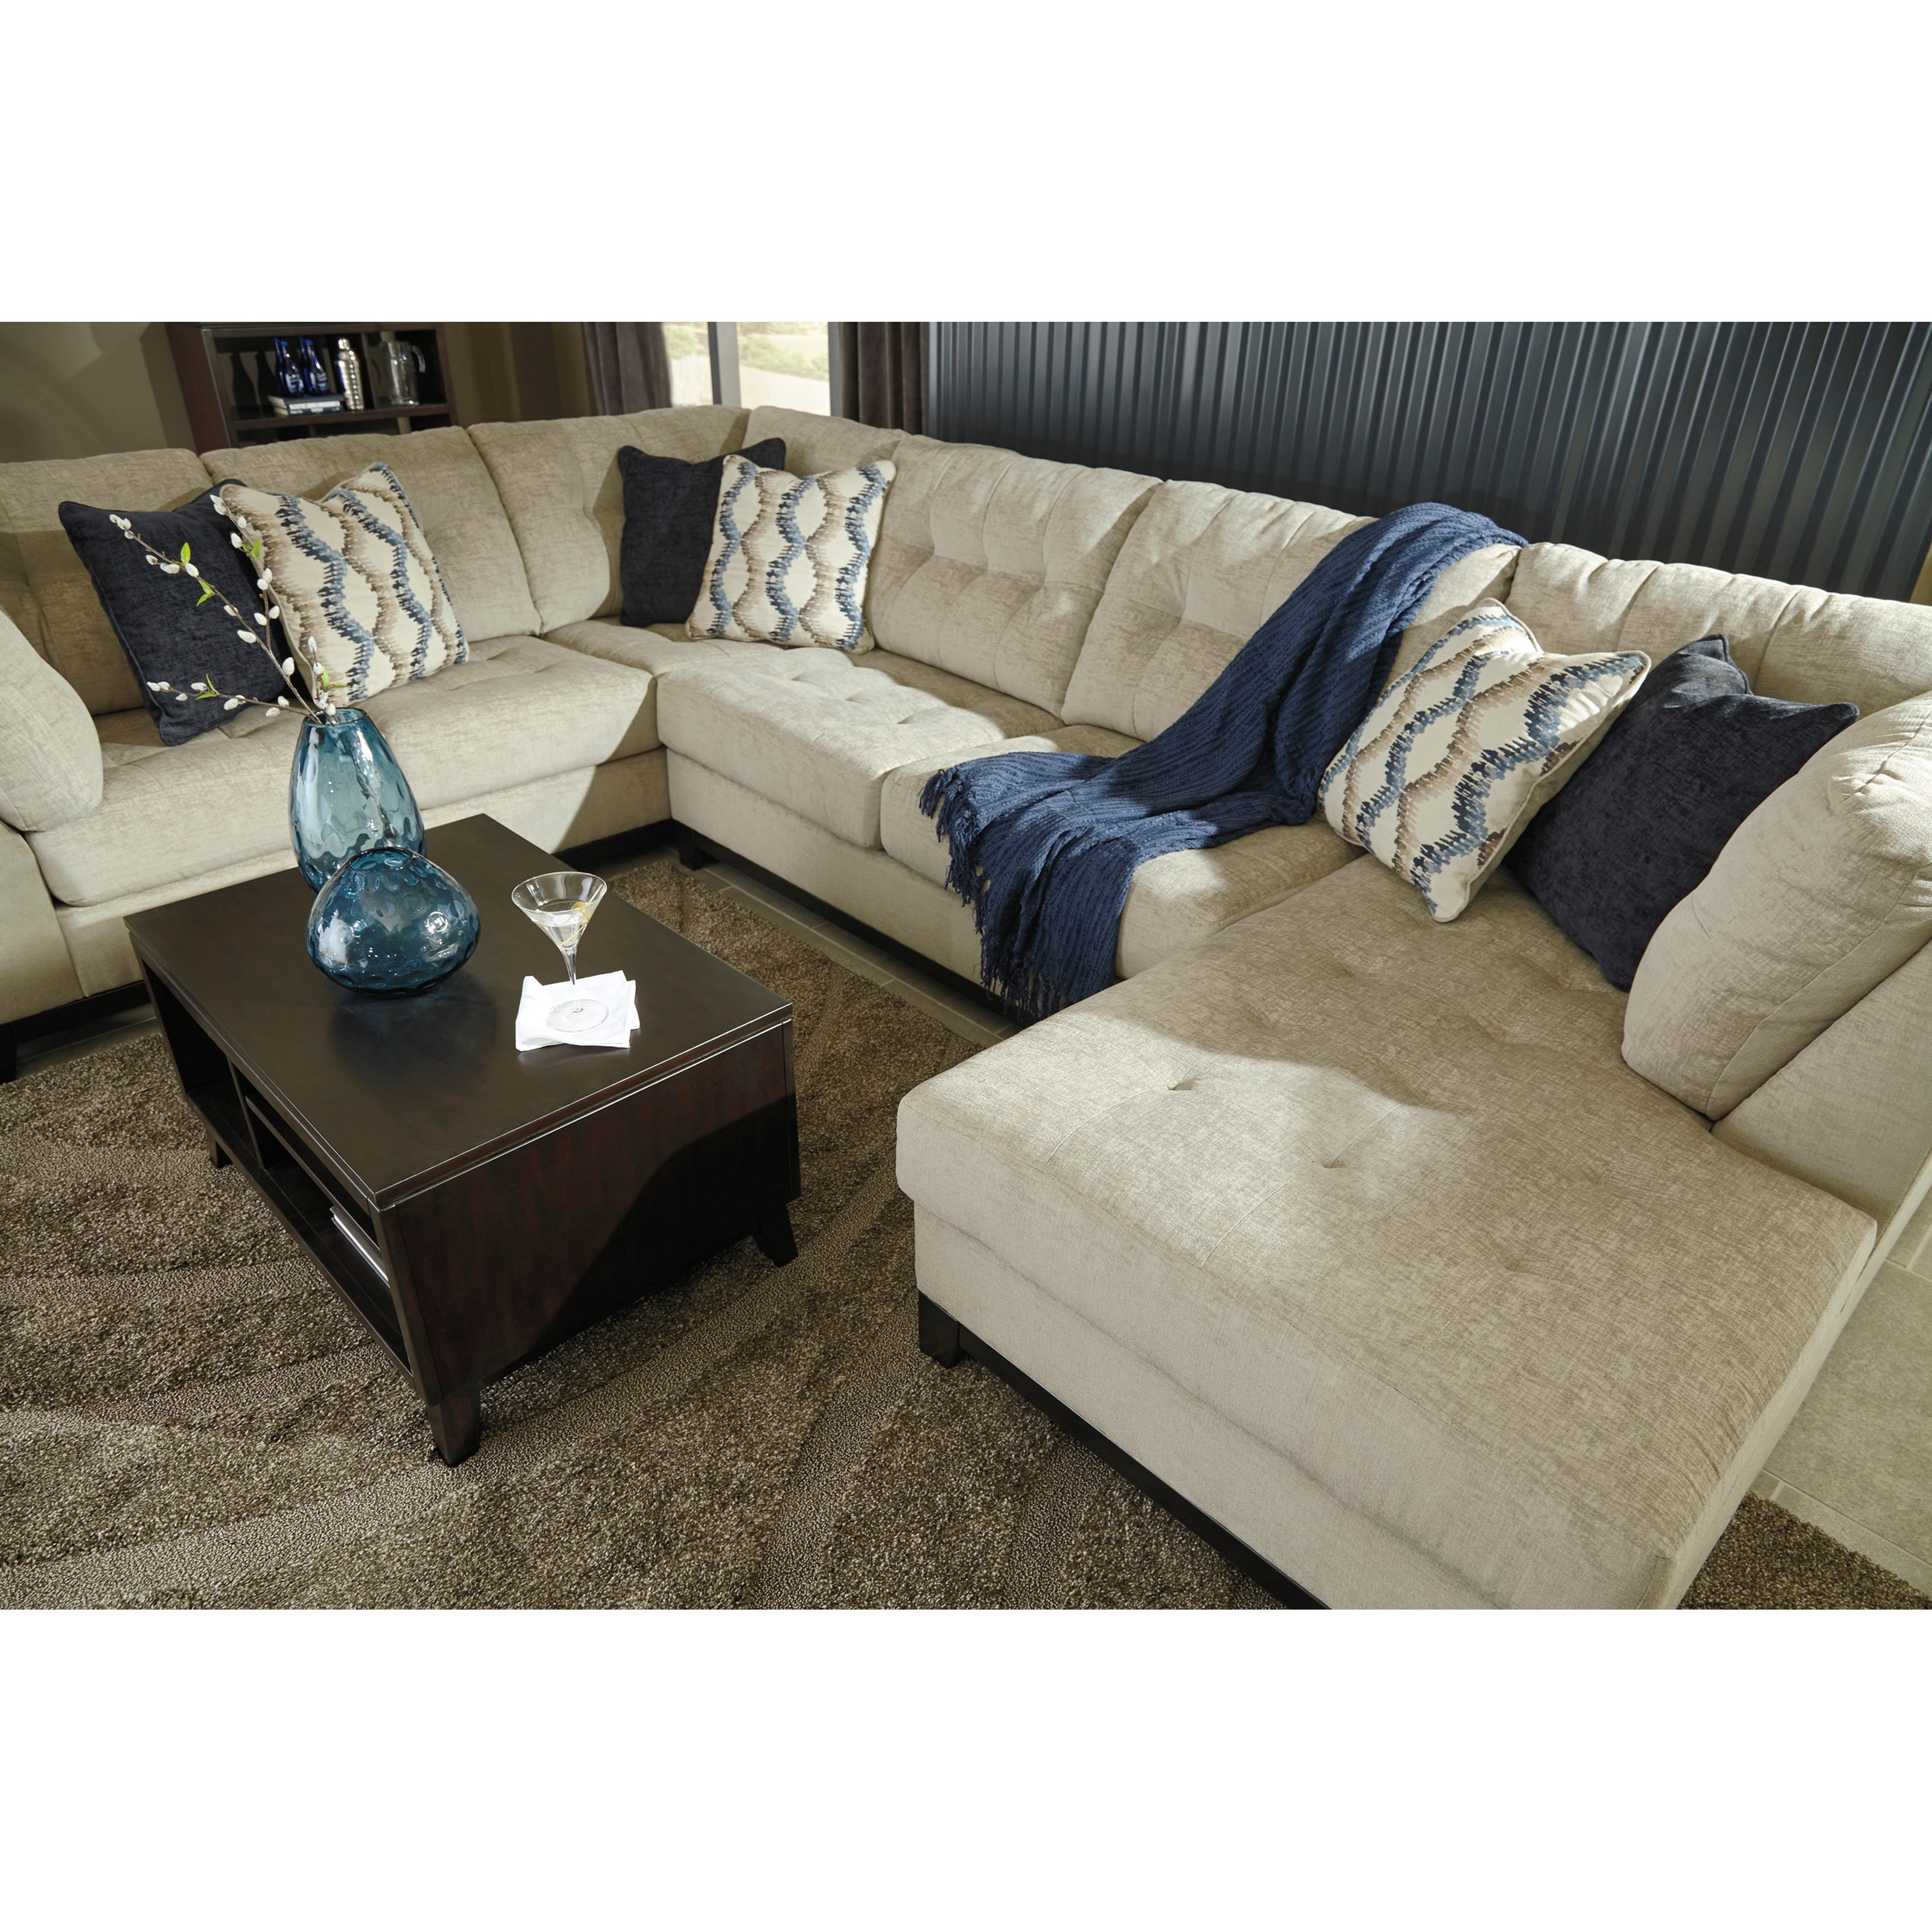 Benchcraft beckendorf 3 piece sectional with right chaise for 3 piece sectional sofa with chaise